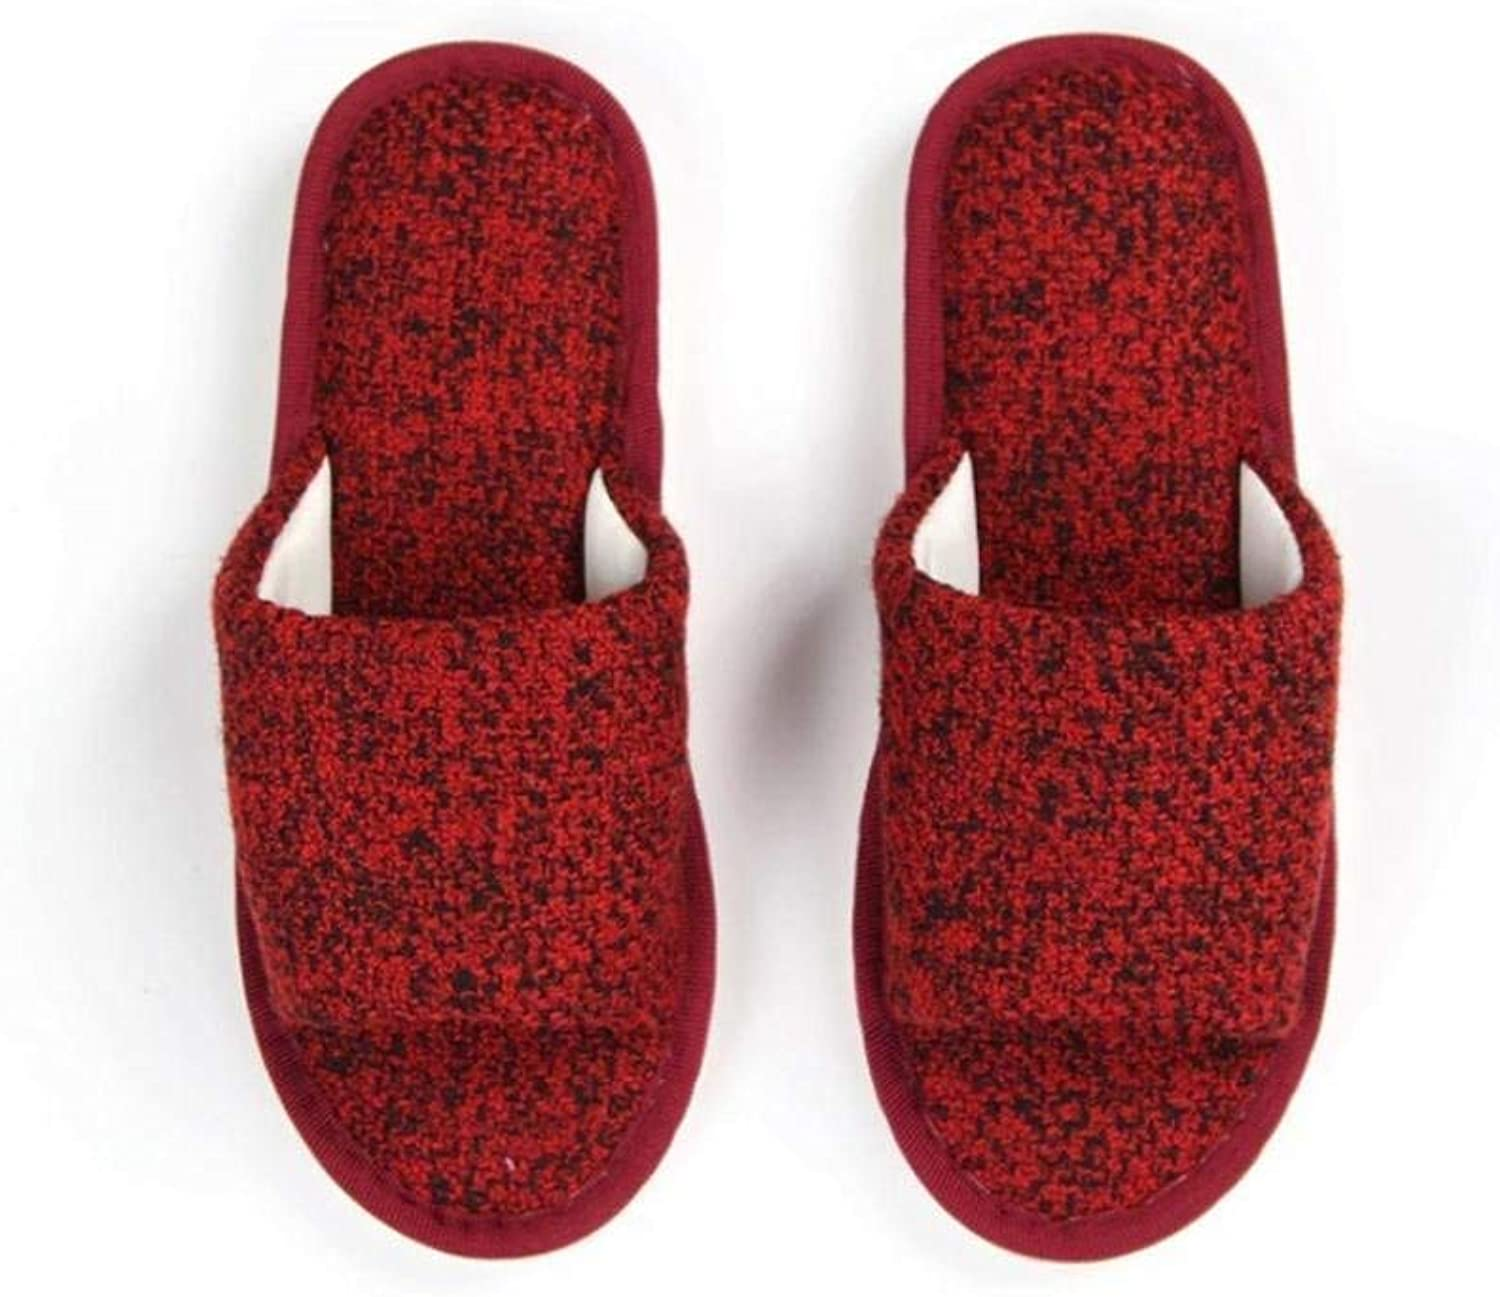 GouuoHi Womens Slippers Ladies Casual Home Slipper Interior Non Slip Bedroom Slippers for Women Fashion shoes bluee Red Slipper